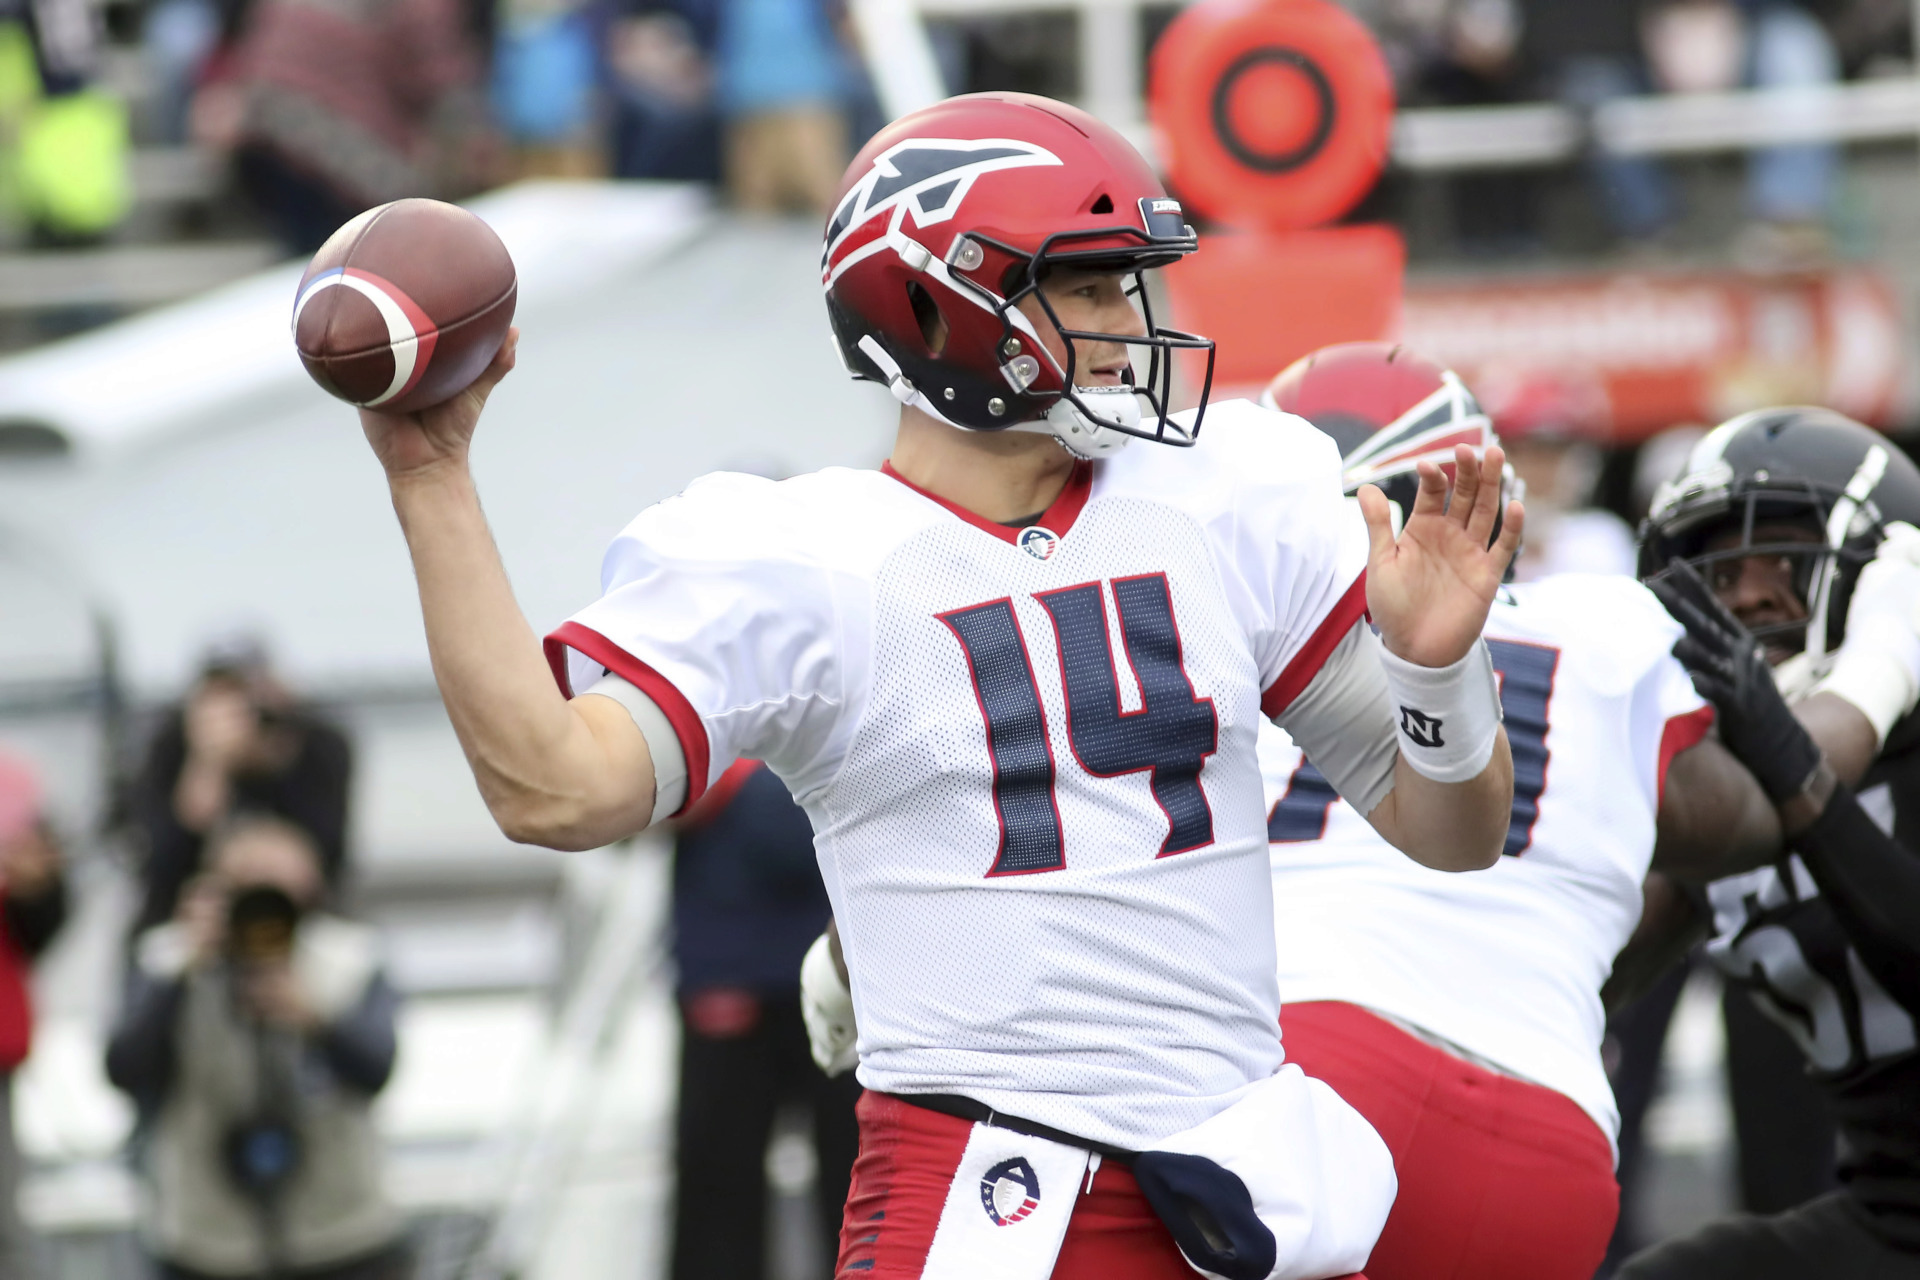 <span><strong>Memphis Express quarterback Christian&nbsp;Hackenberg (14) during the game between the Birmingham Iron and the Memphis Express on Feb. 10, 2019, at Legion Field in Birmingham, Alabama.</strong> (Michael Wade/Icon Sportswire via AP Images)</span>